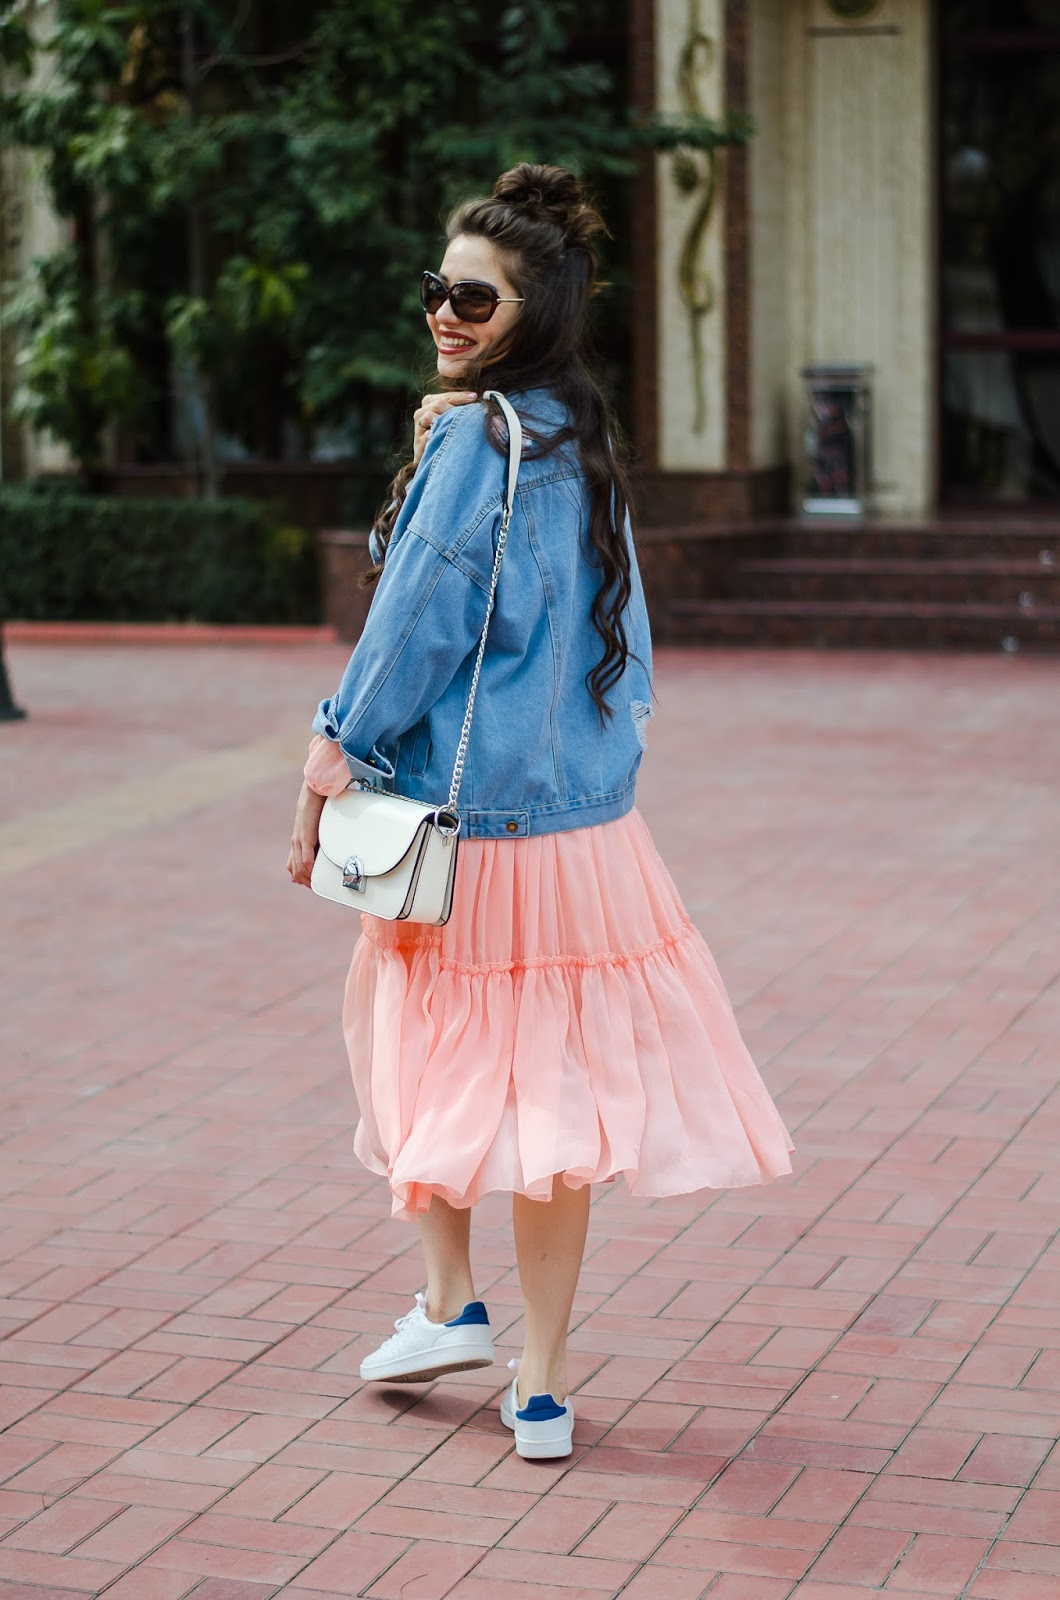 fashion blogger diyorasnotes diyora beta pink midi dress ruffles white sneakers denom jacket romwe white bag curly hair